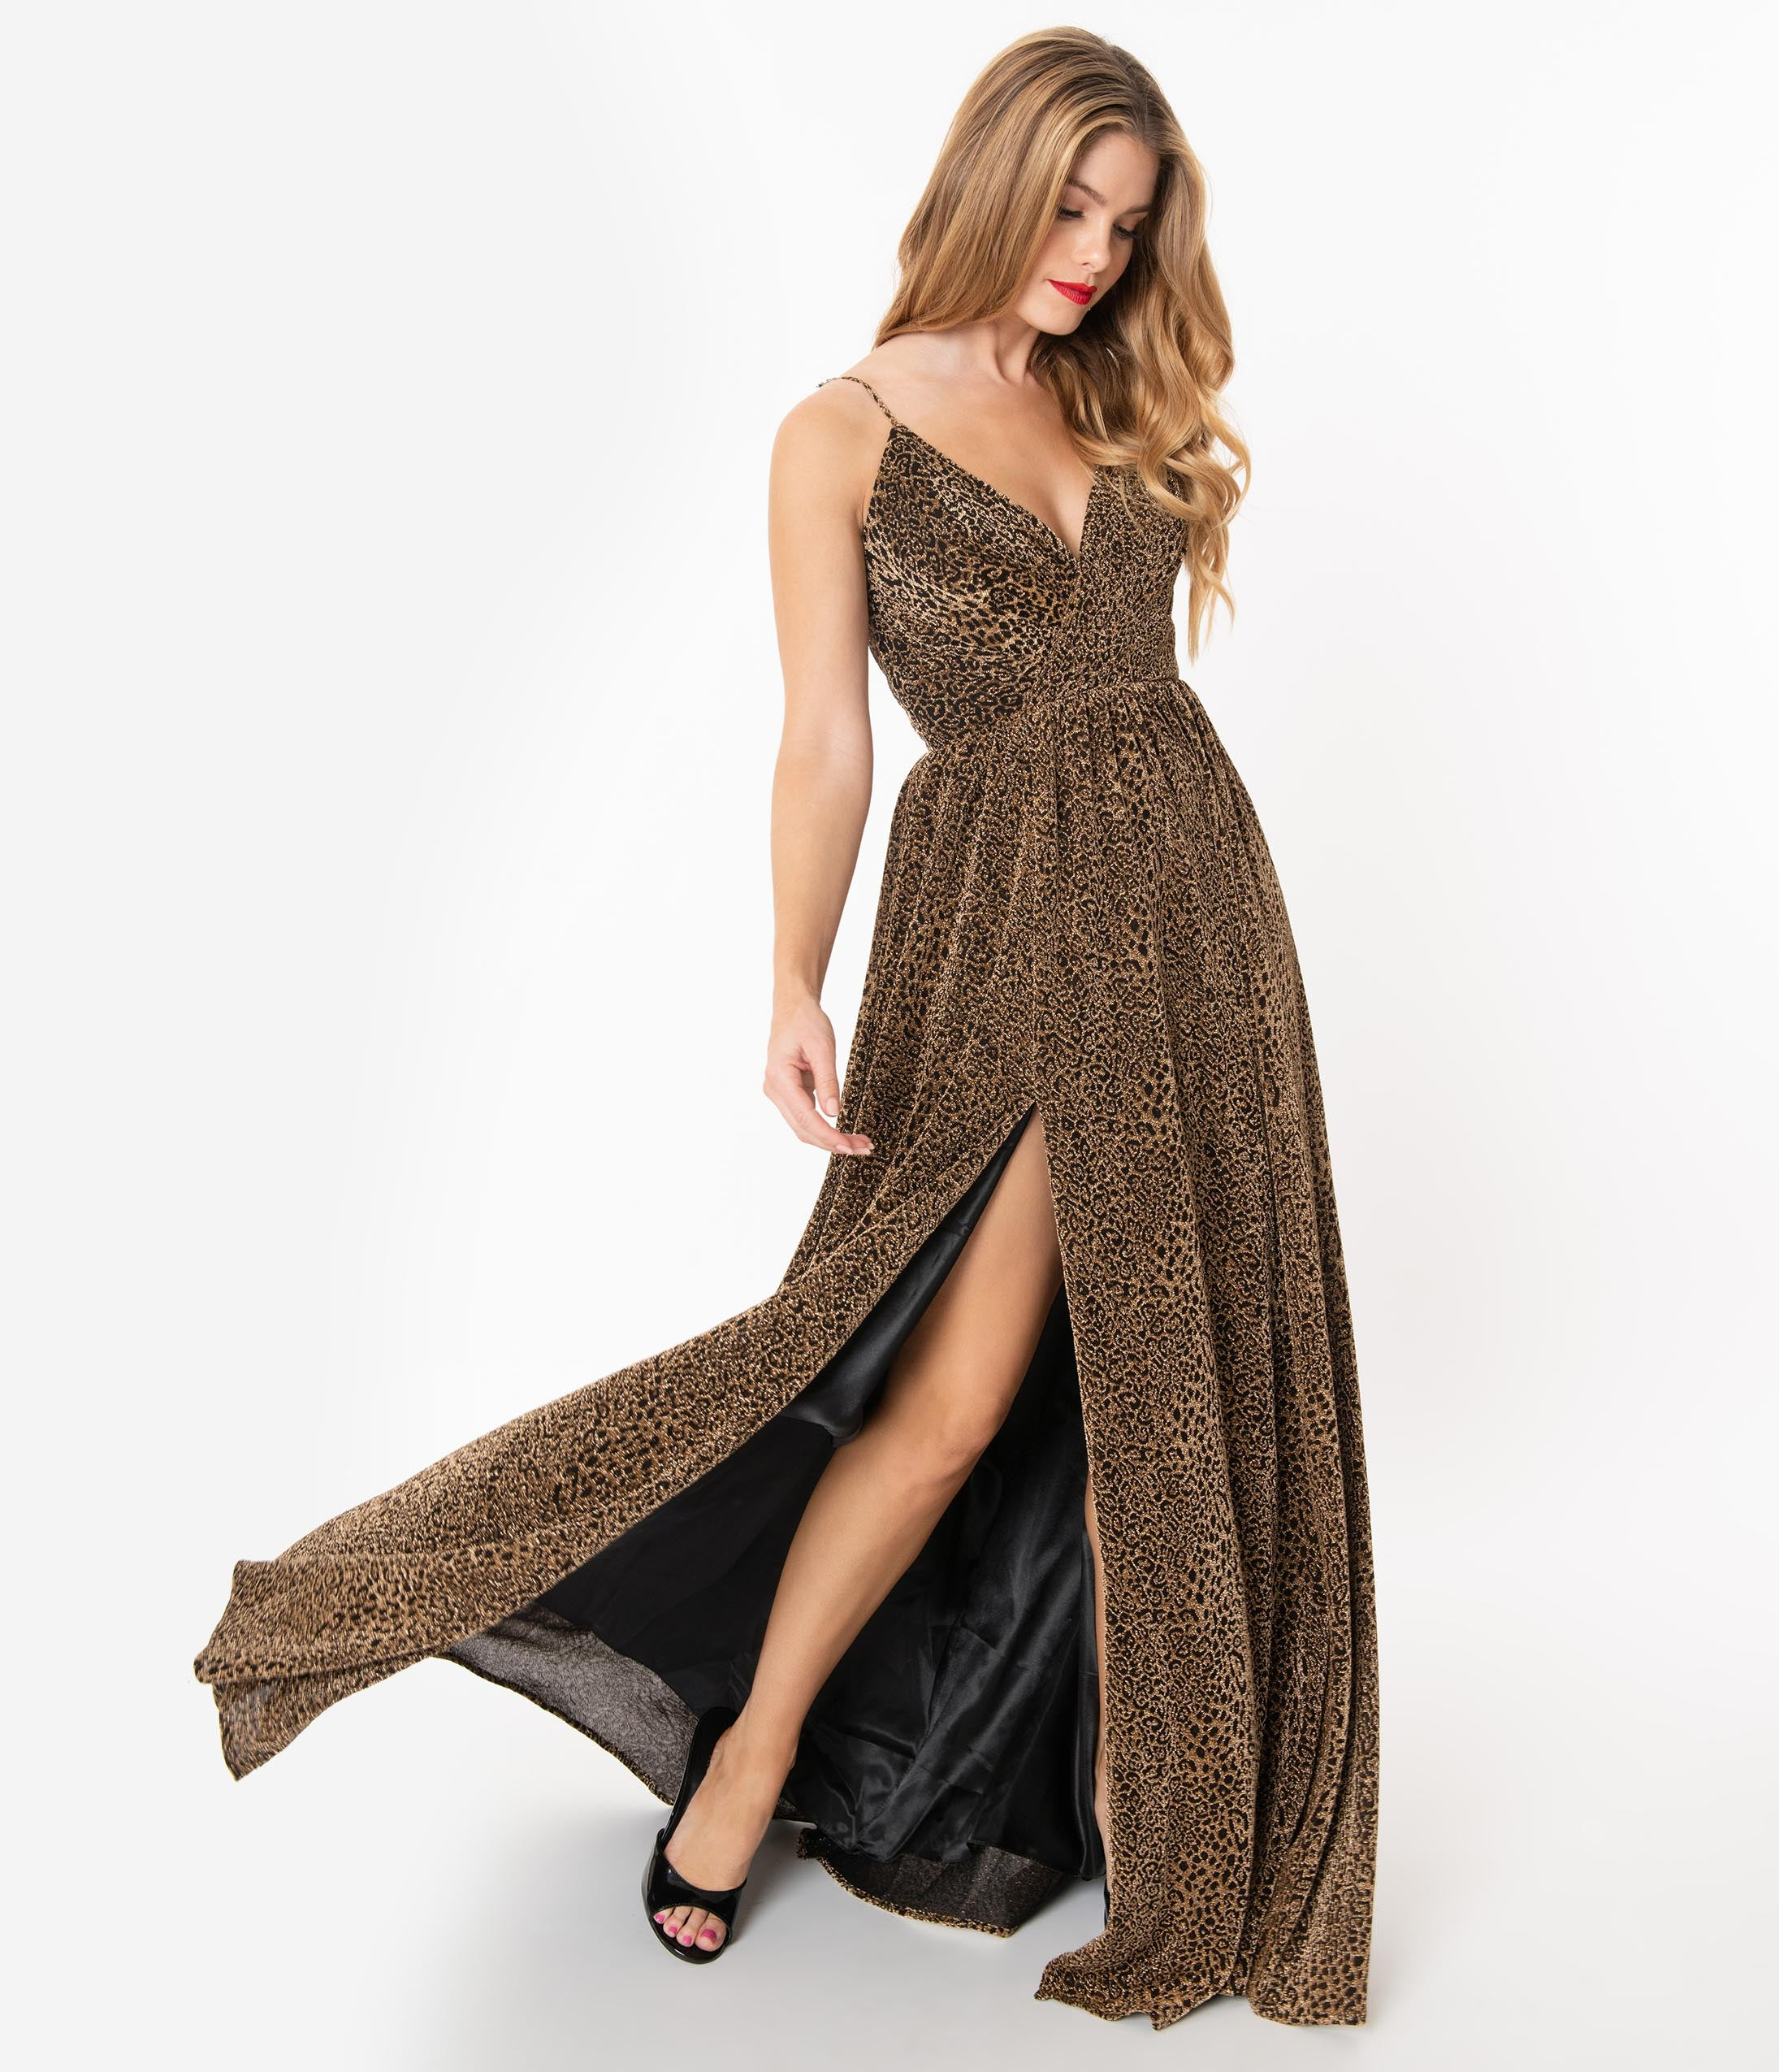 70s Prom, Formal, Evening, Party Dresses Black  Metallic Gold Leopard Sexy Long Dress $208.00 AT vintagedancer.com